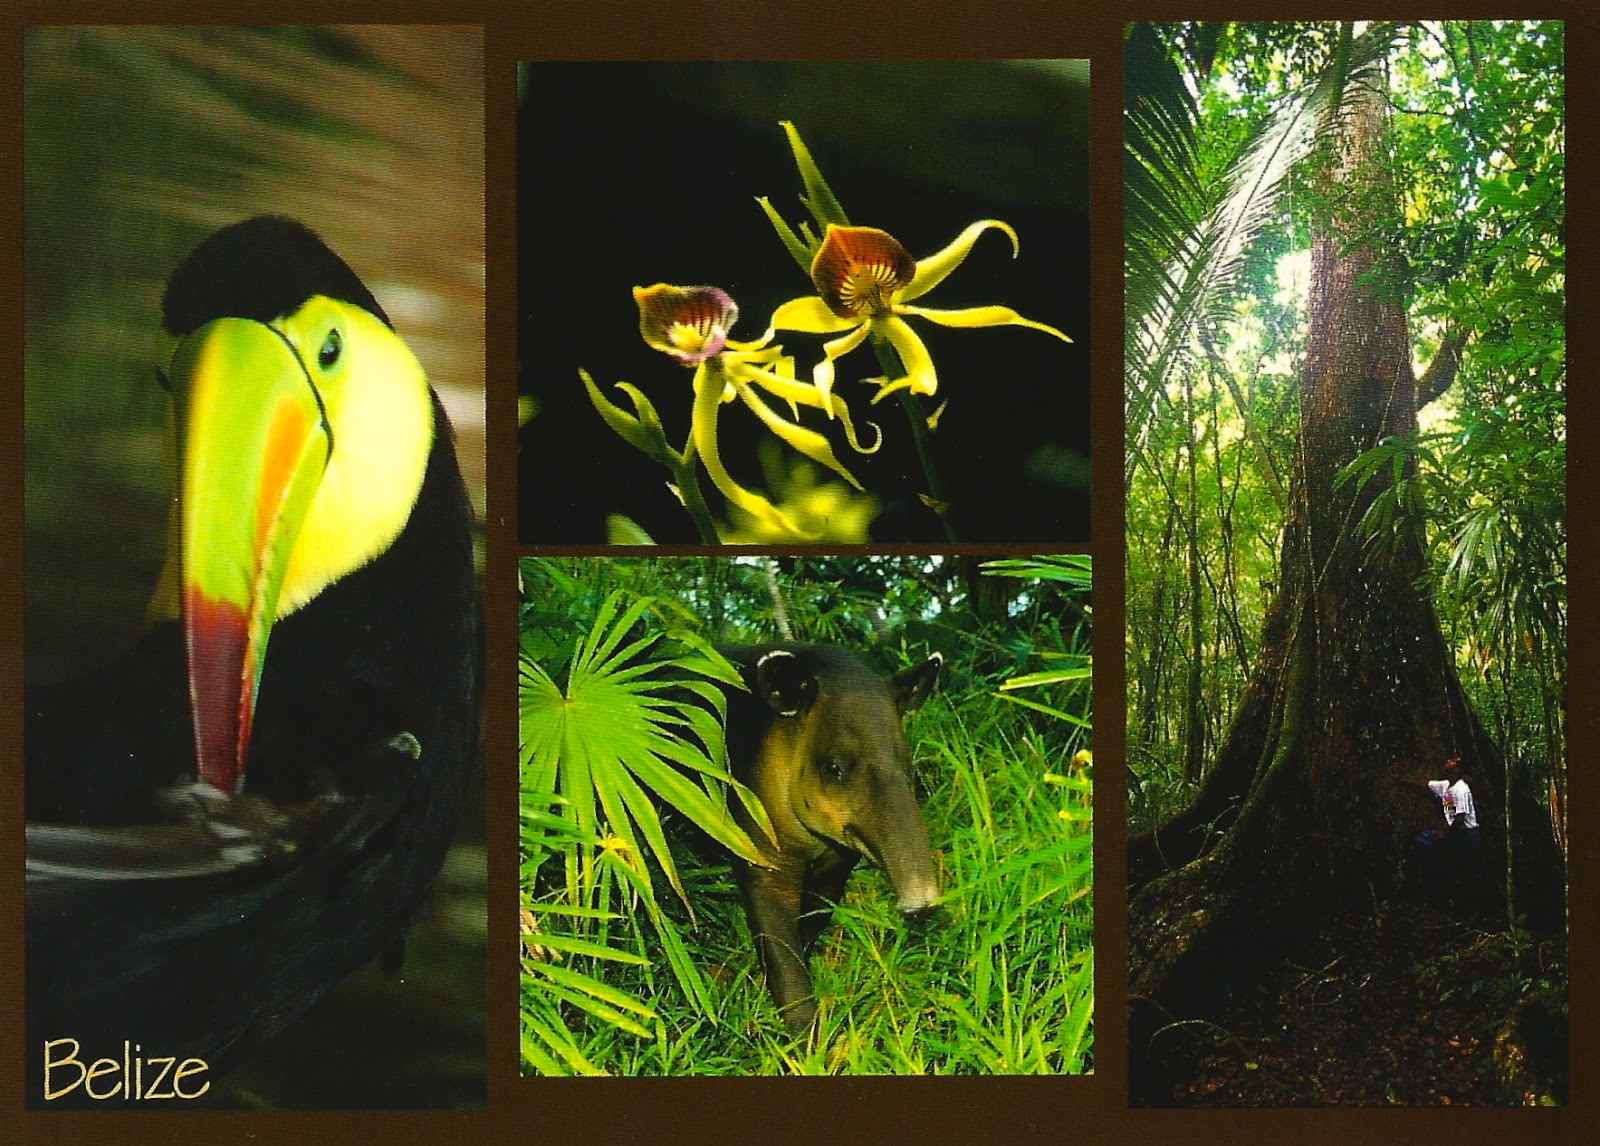 My favorite animal postcards keel billed toucan and tapir from belize keel billed toucan and tapir from belize biocorpaavc Image collections